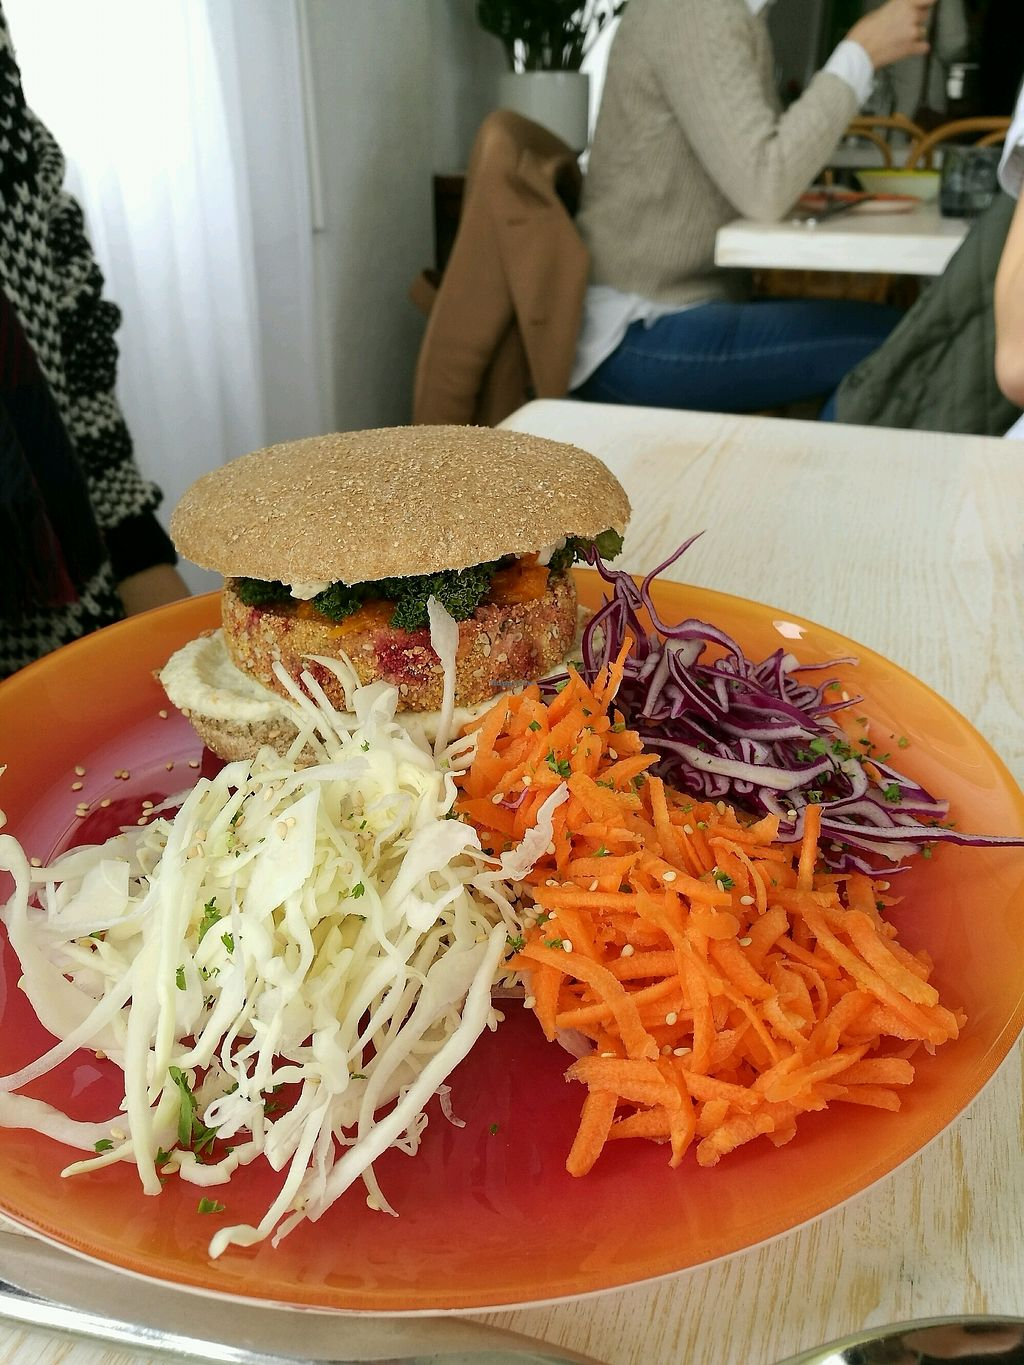 """Photo of Eat.eco  by <a href=""""/members/profile/LucieGaspari"""">LucieGaspari</a> <br/>bean and kale burger <br/> March 22, 2018  - <a href='/contact/abuse/image/99988/374487'>Report</a>"""